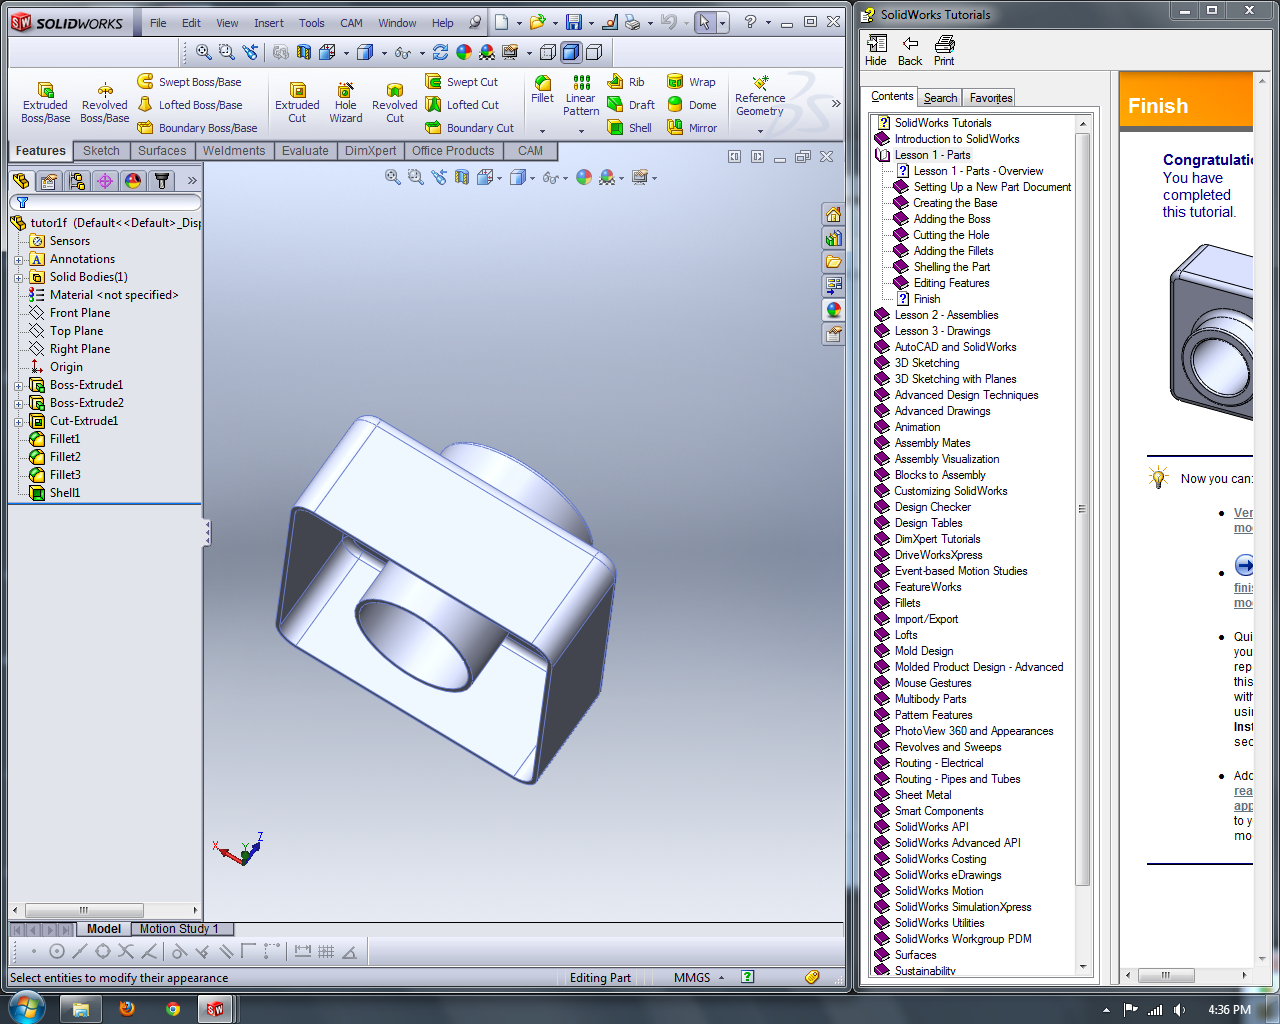 GadgetNate | What I Learned in SolidWorks today